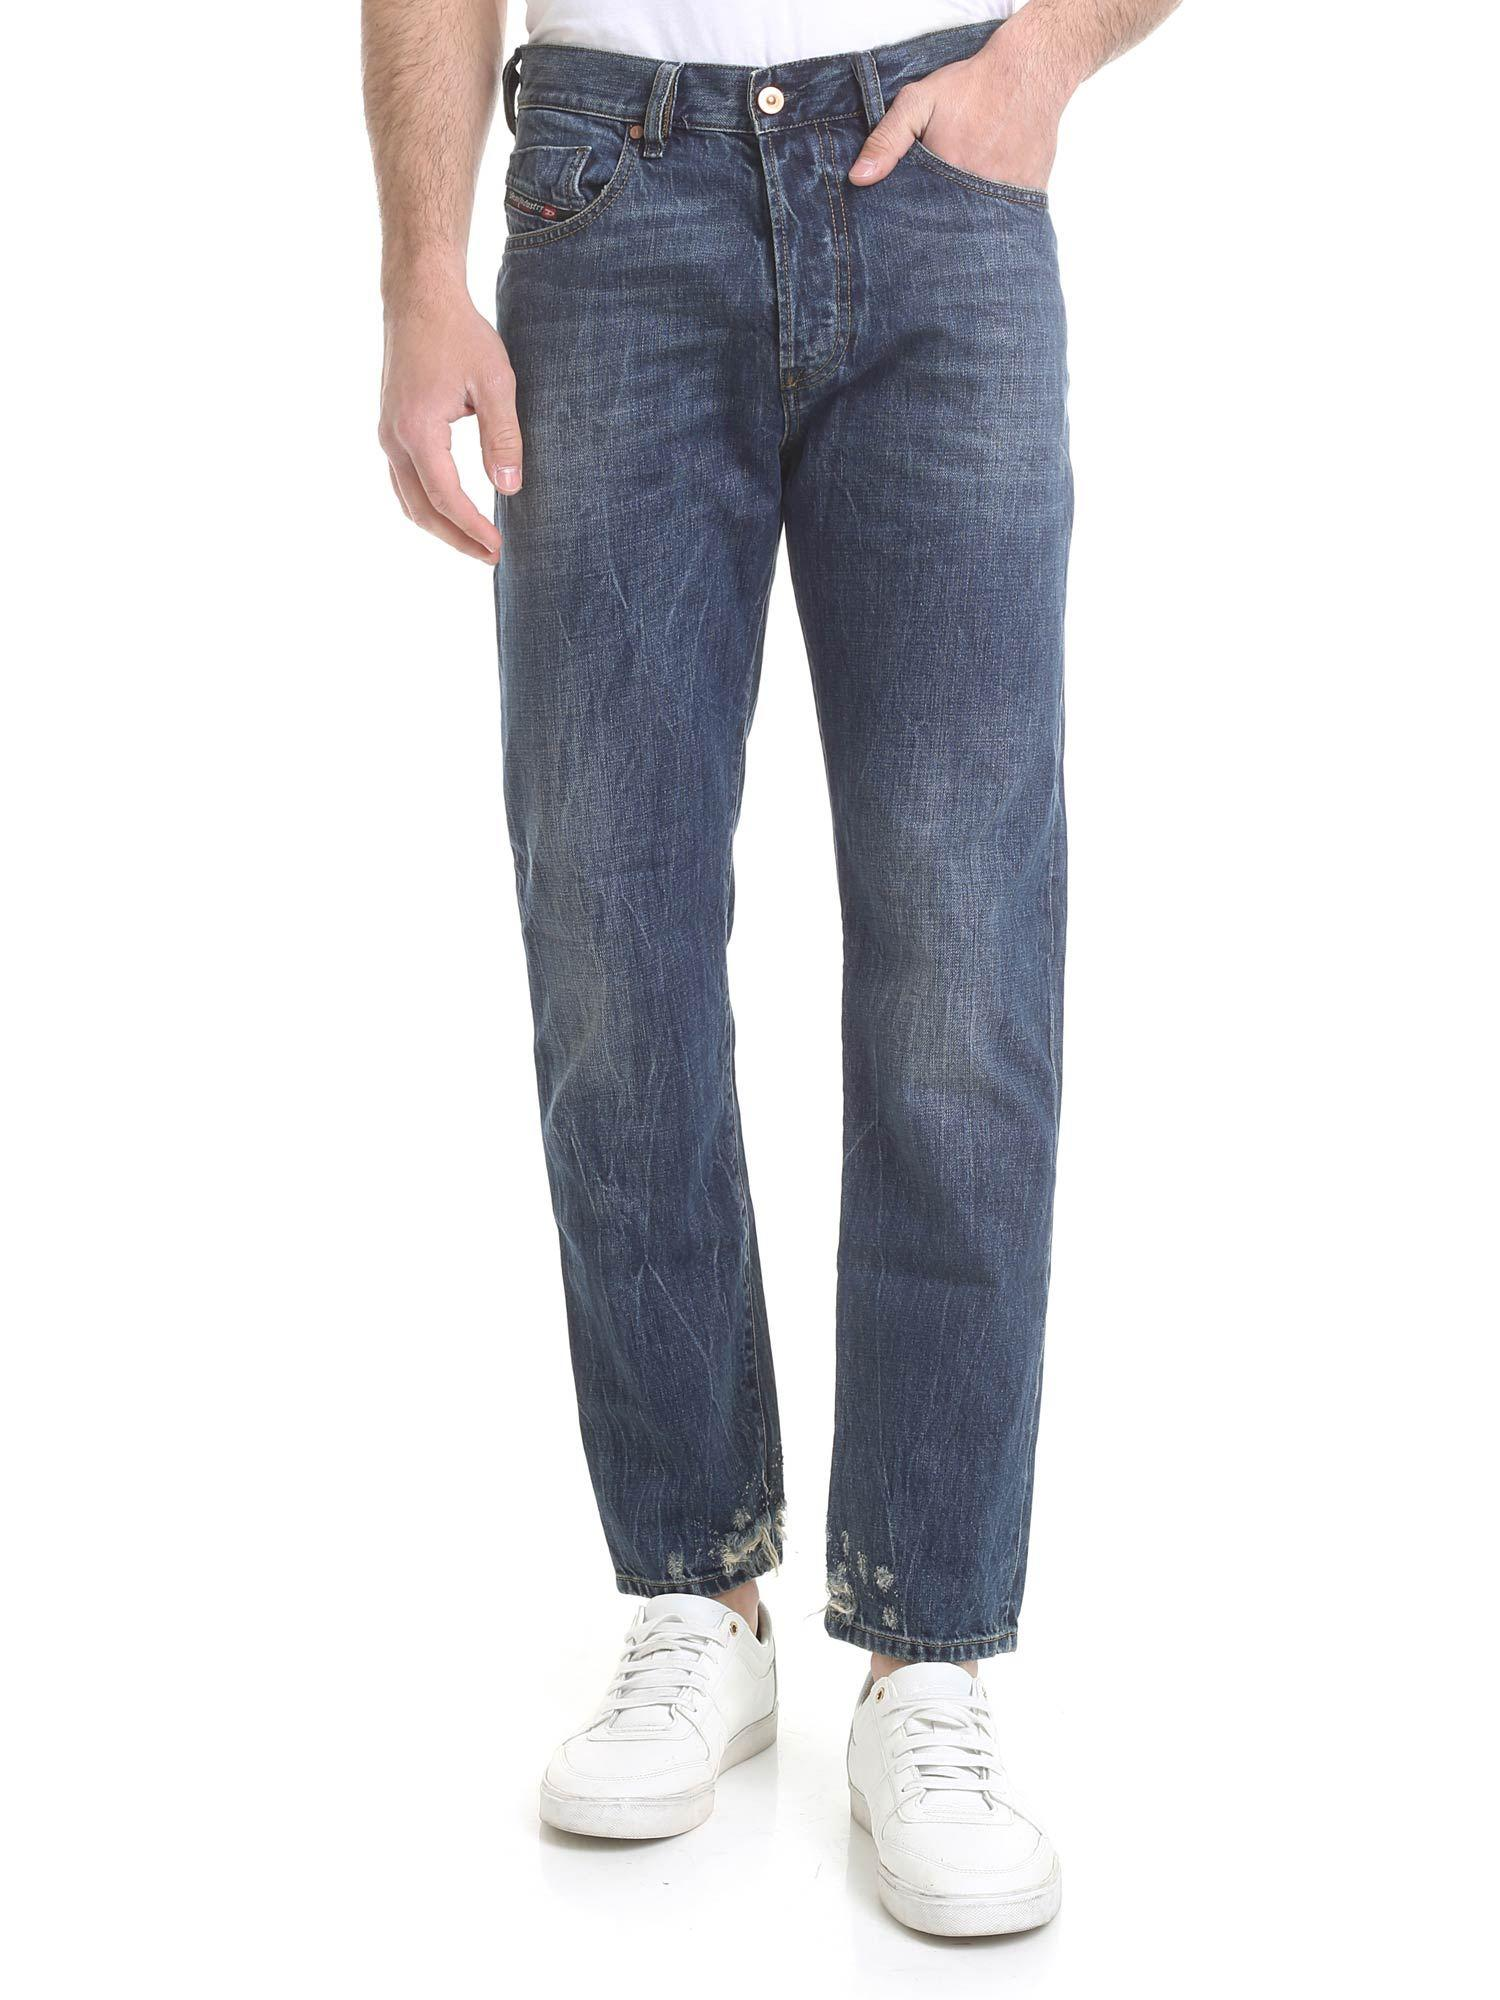 05b91c73 Lyst - DIESEL Mharky Jeans Vintage Effect In Blue in Blue for Men